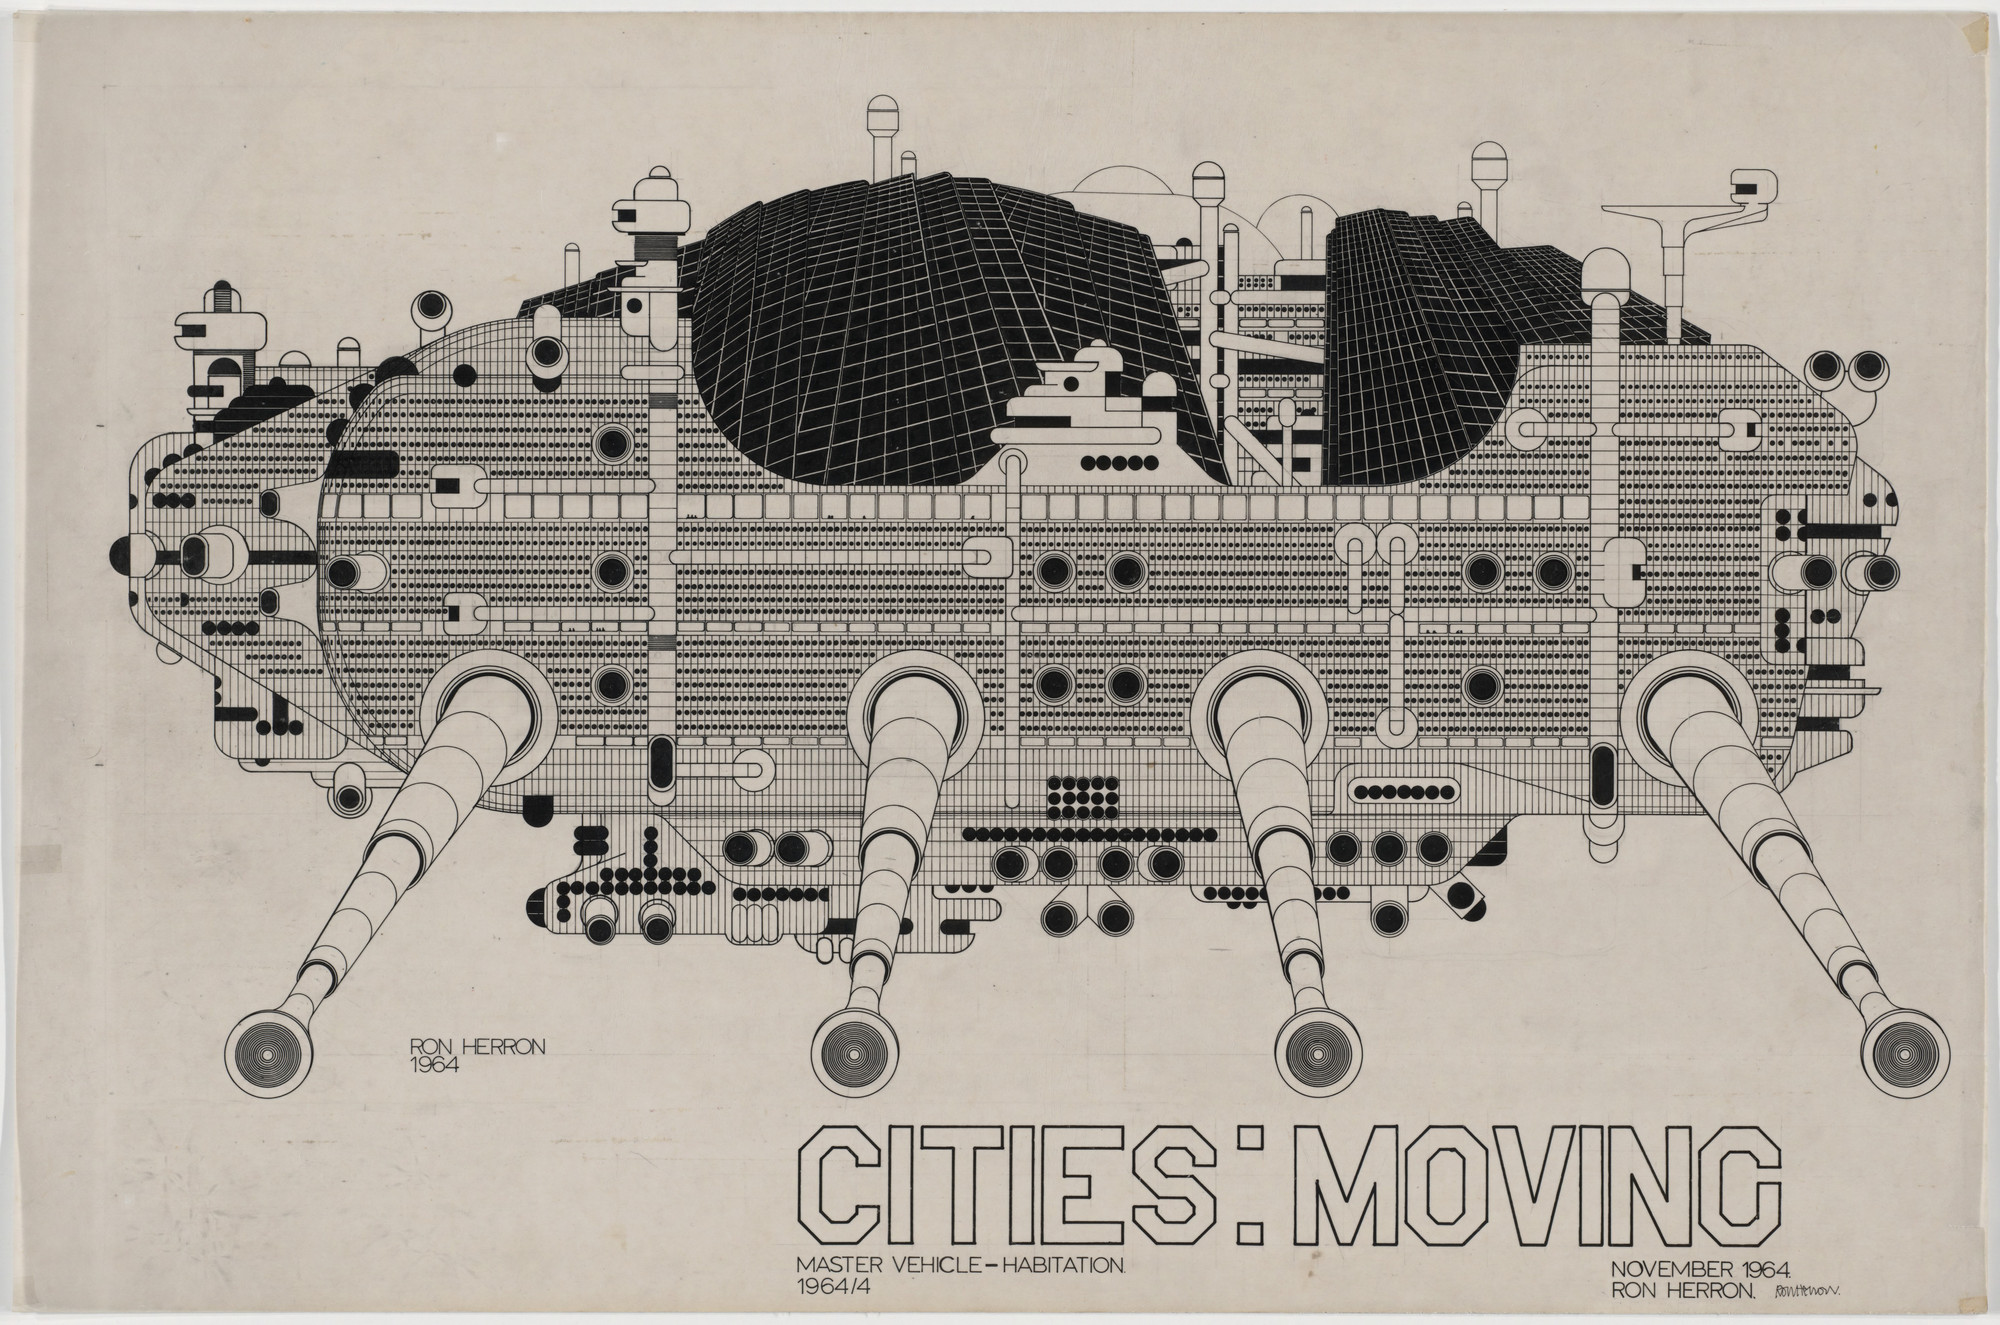 Ron Herron. Cities: Moving, Master Vehicle-Habitation Project, Aerial Perspective. 1964